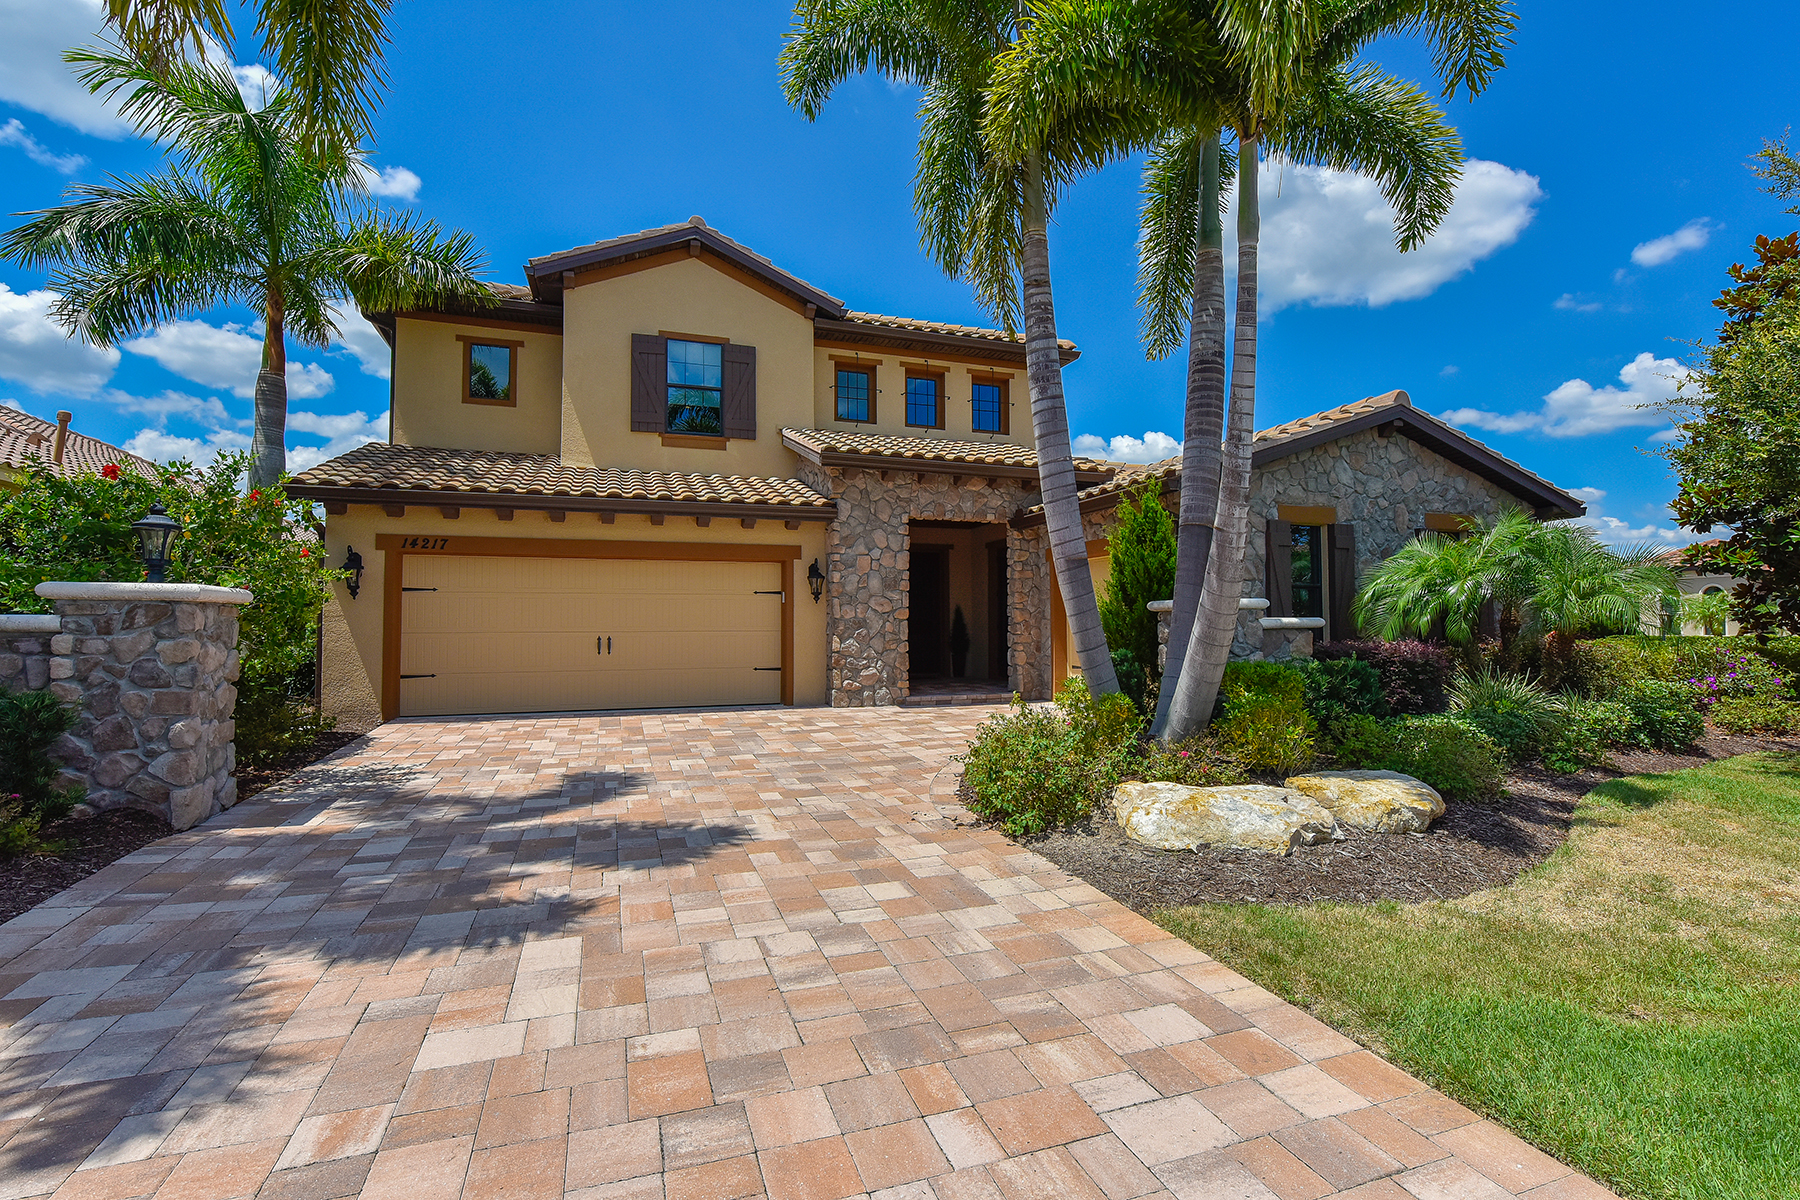 Single Family Home for Sale at LAKEWOOD RANCH - COUNTRY CLUB EAST 14217 Bathgate Terr Lakewood Ranch, Florida, 34202 United States